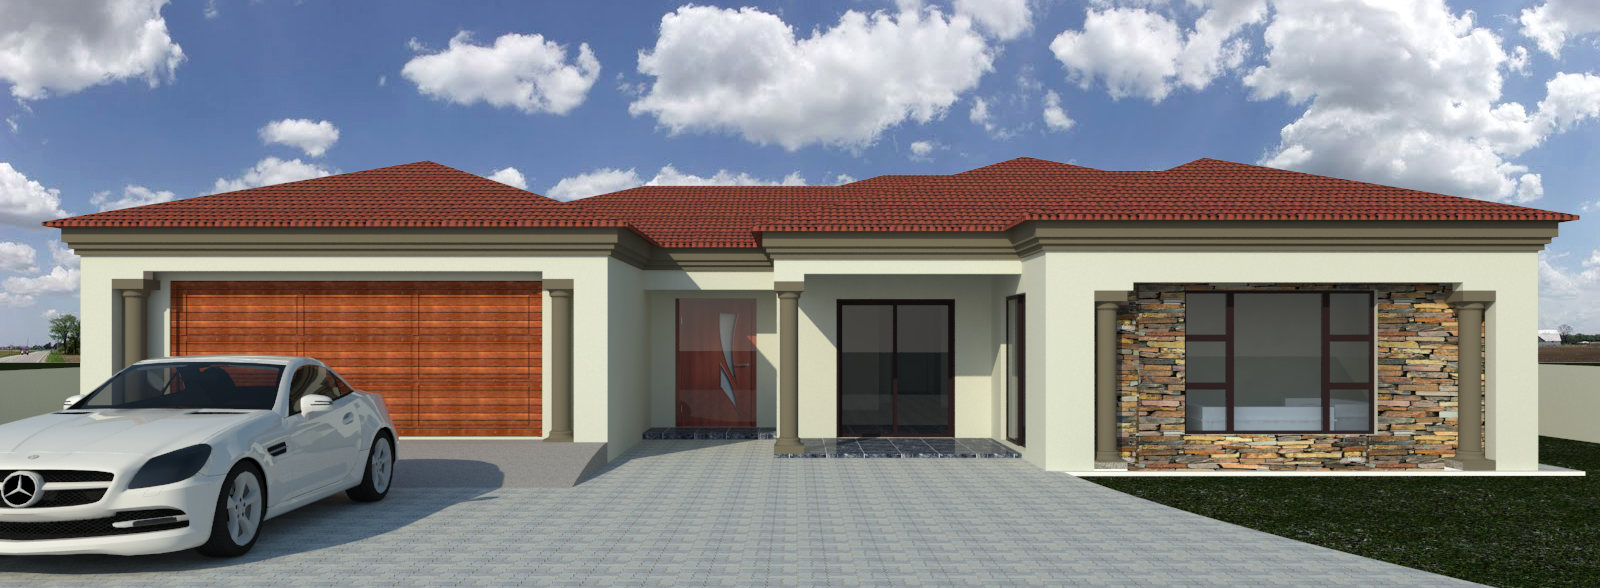 House plans south africa most affordable way build simple for Most popular house plan